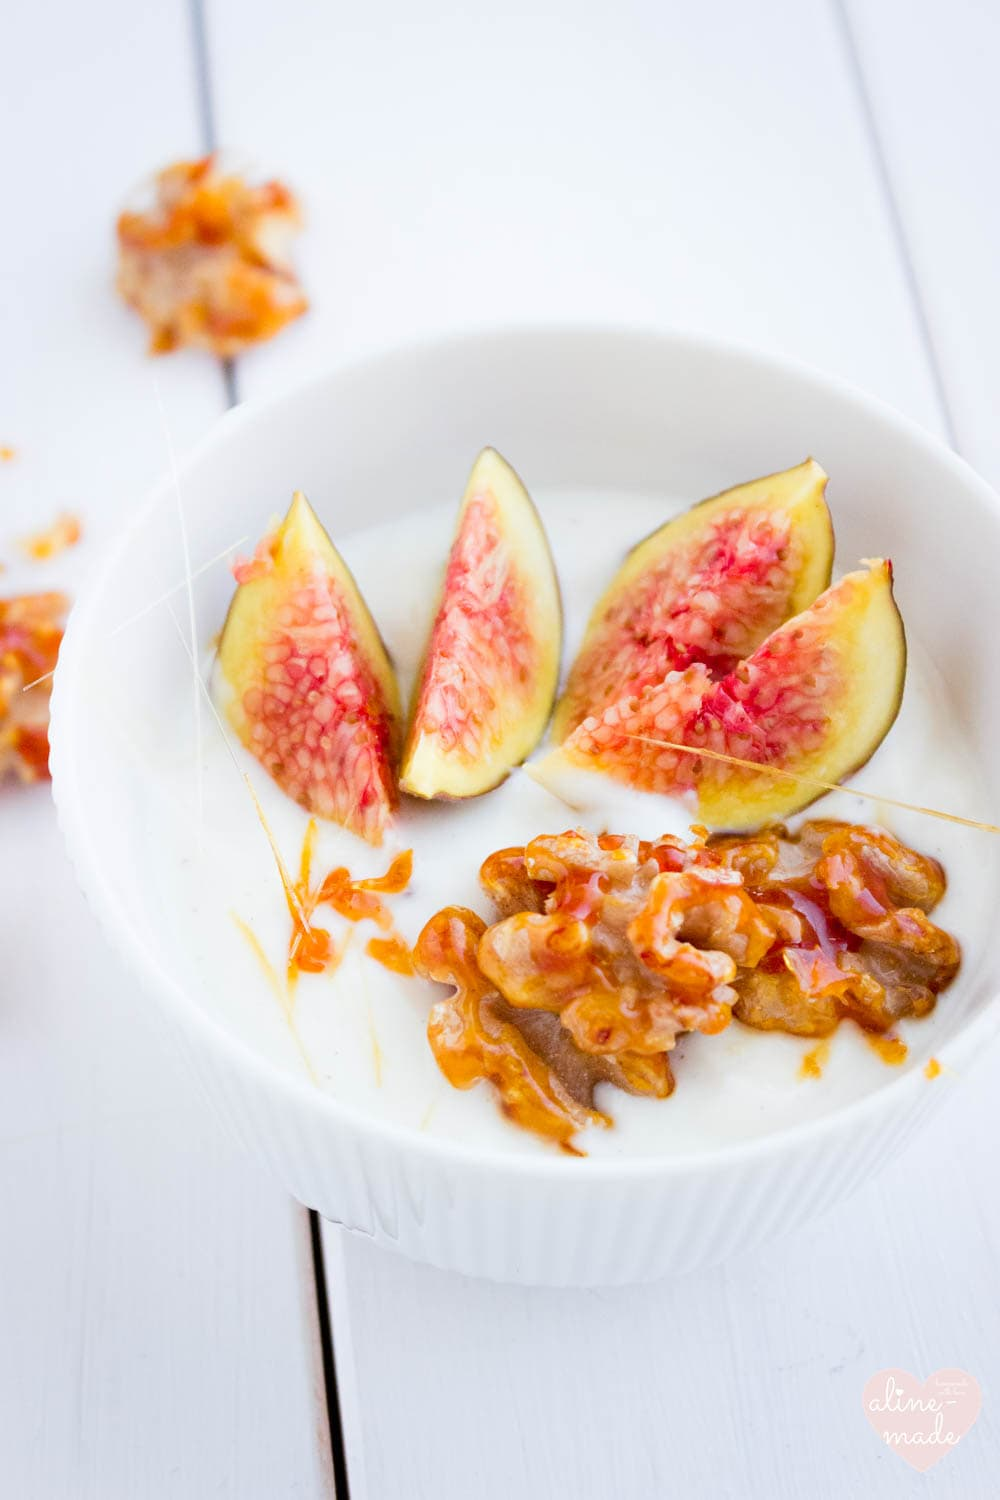 Yogurt with Candied Walnuts and Fig - Serves 1 - 15 Minutes